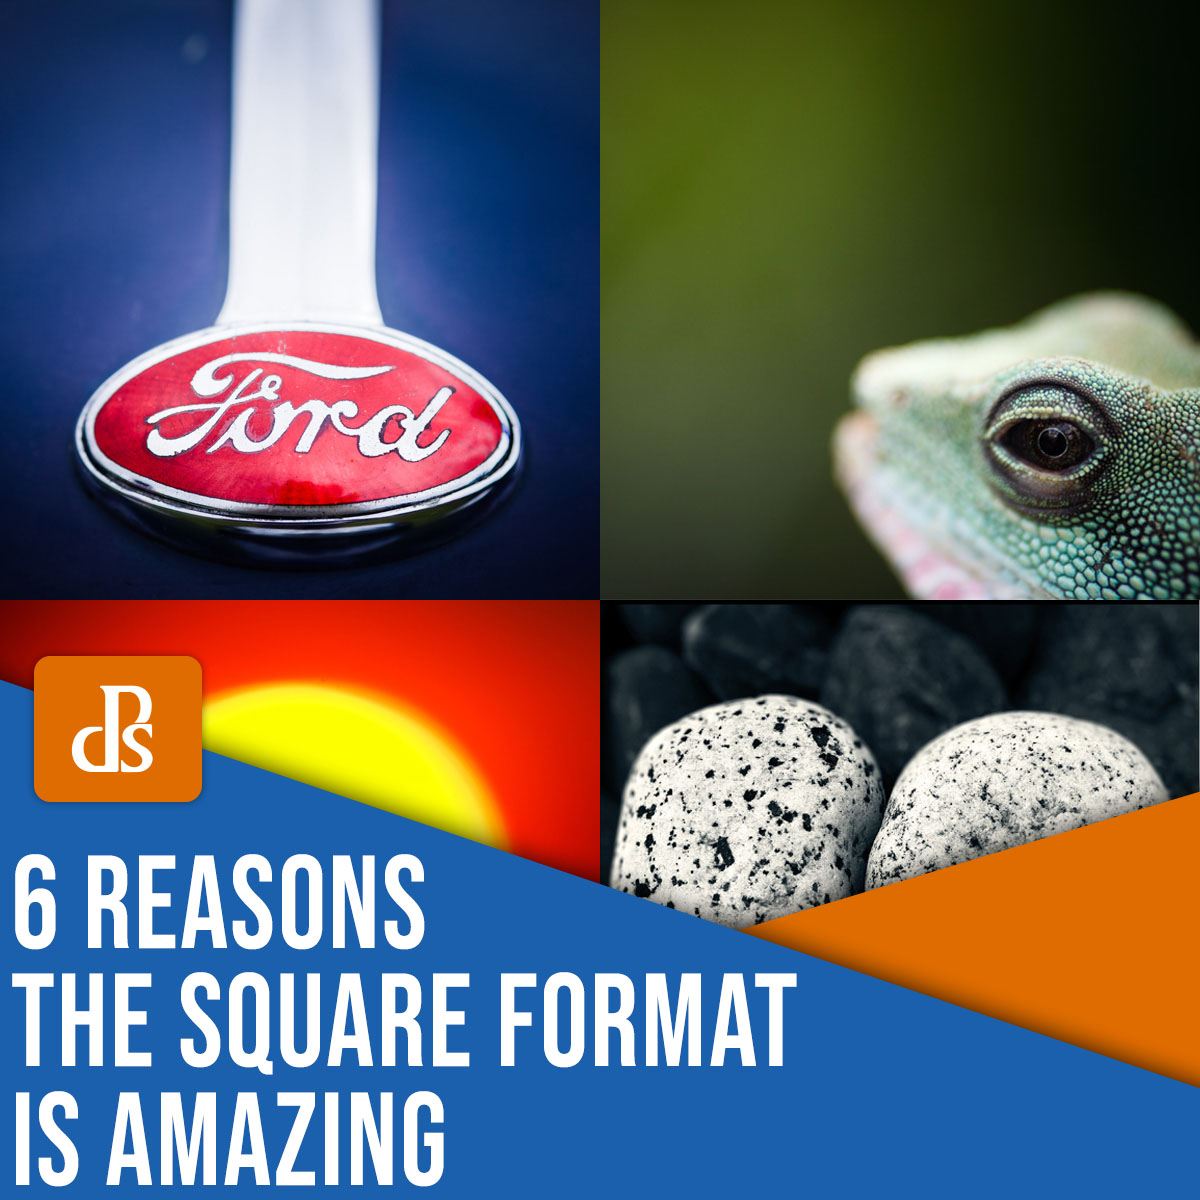 6 reasons the square format is amazing